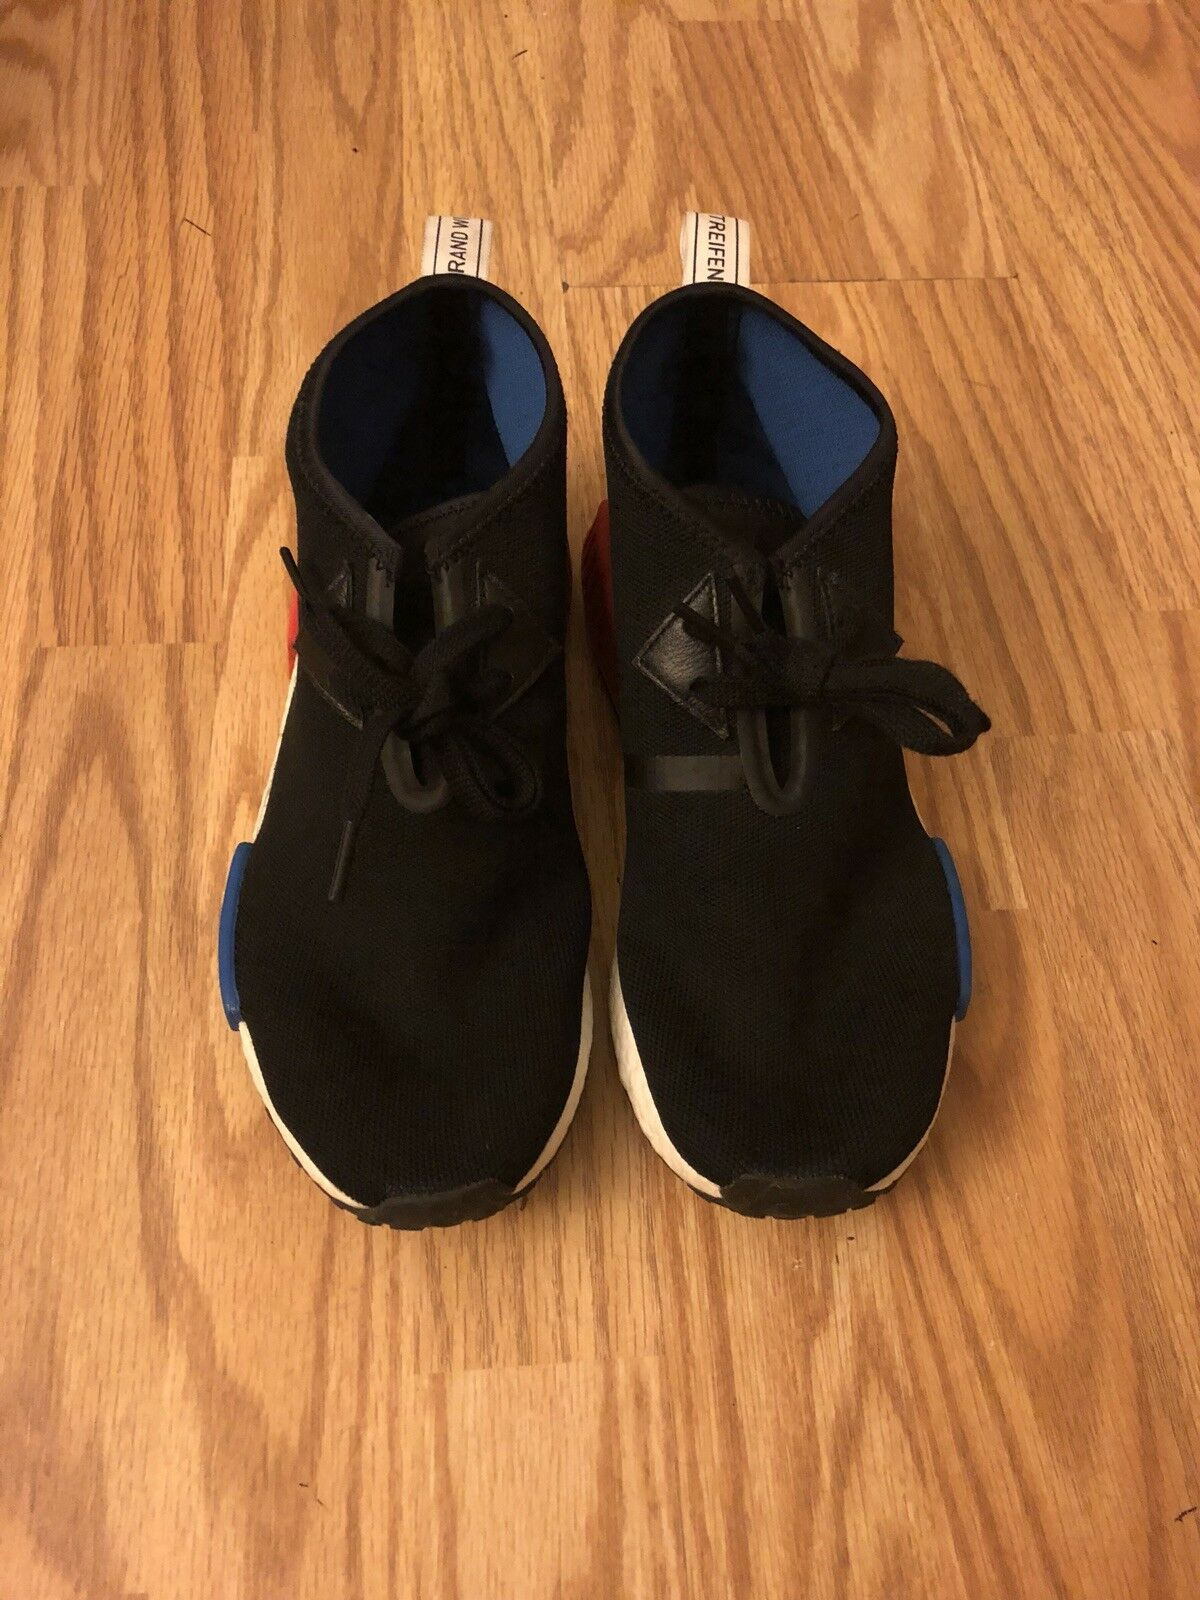 "adidas NMD_C1 ""OG Colorway"" Men's Size 9.5"